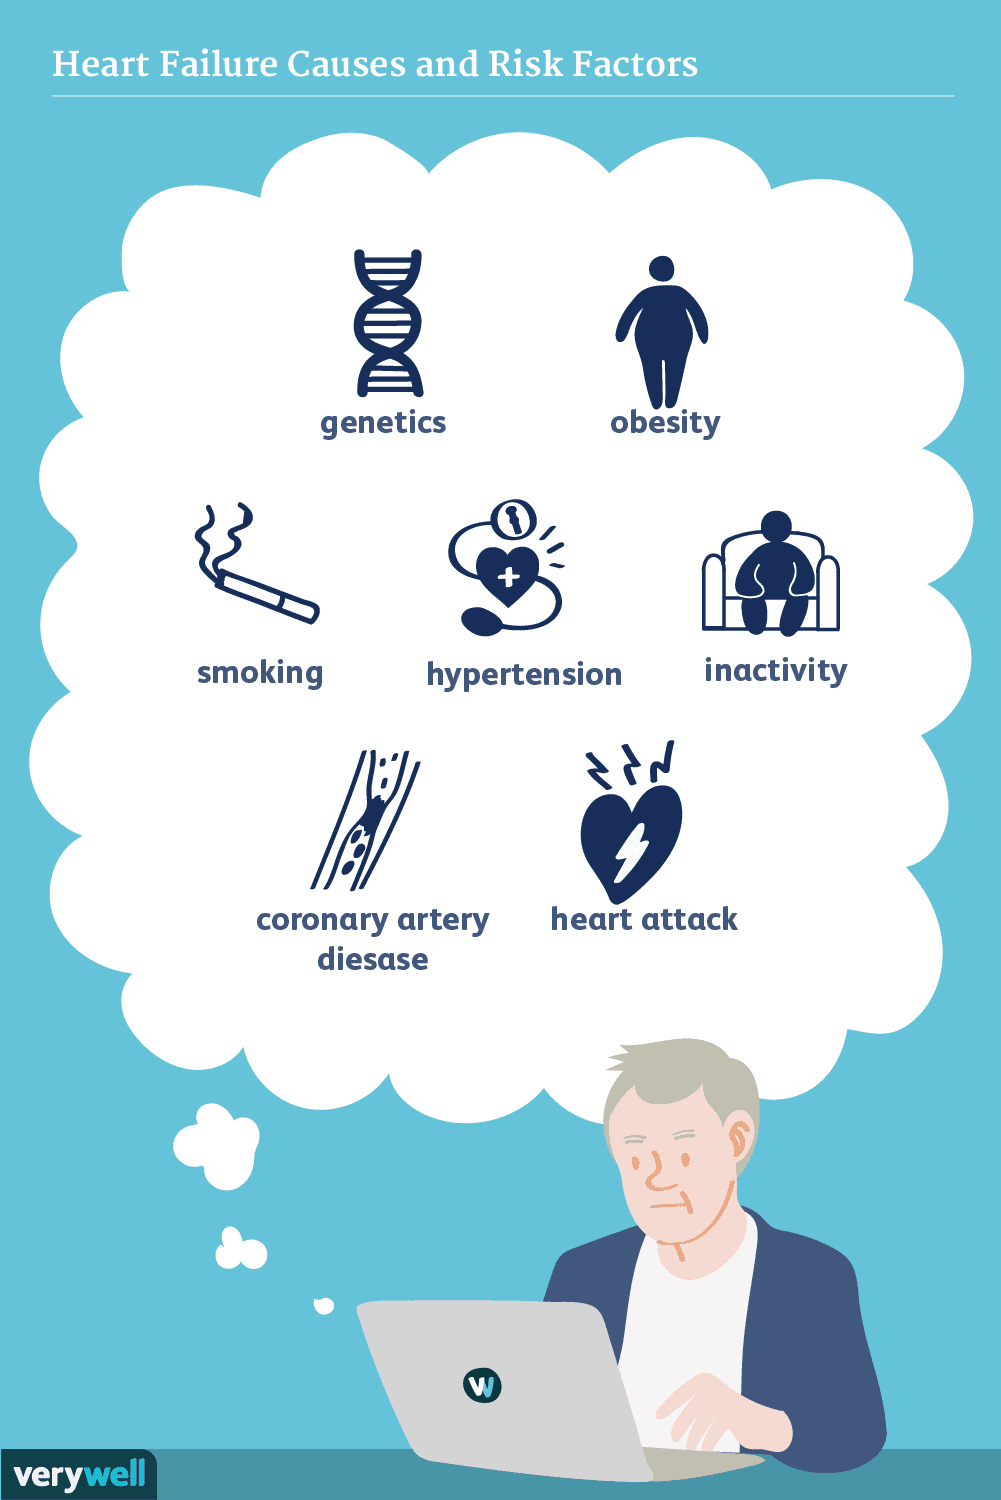 heart failure causes and risk factors